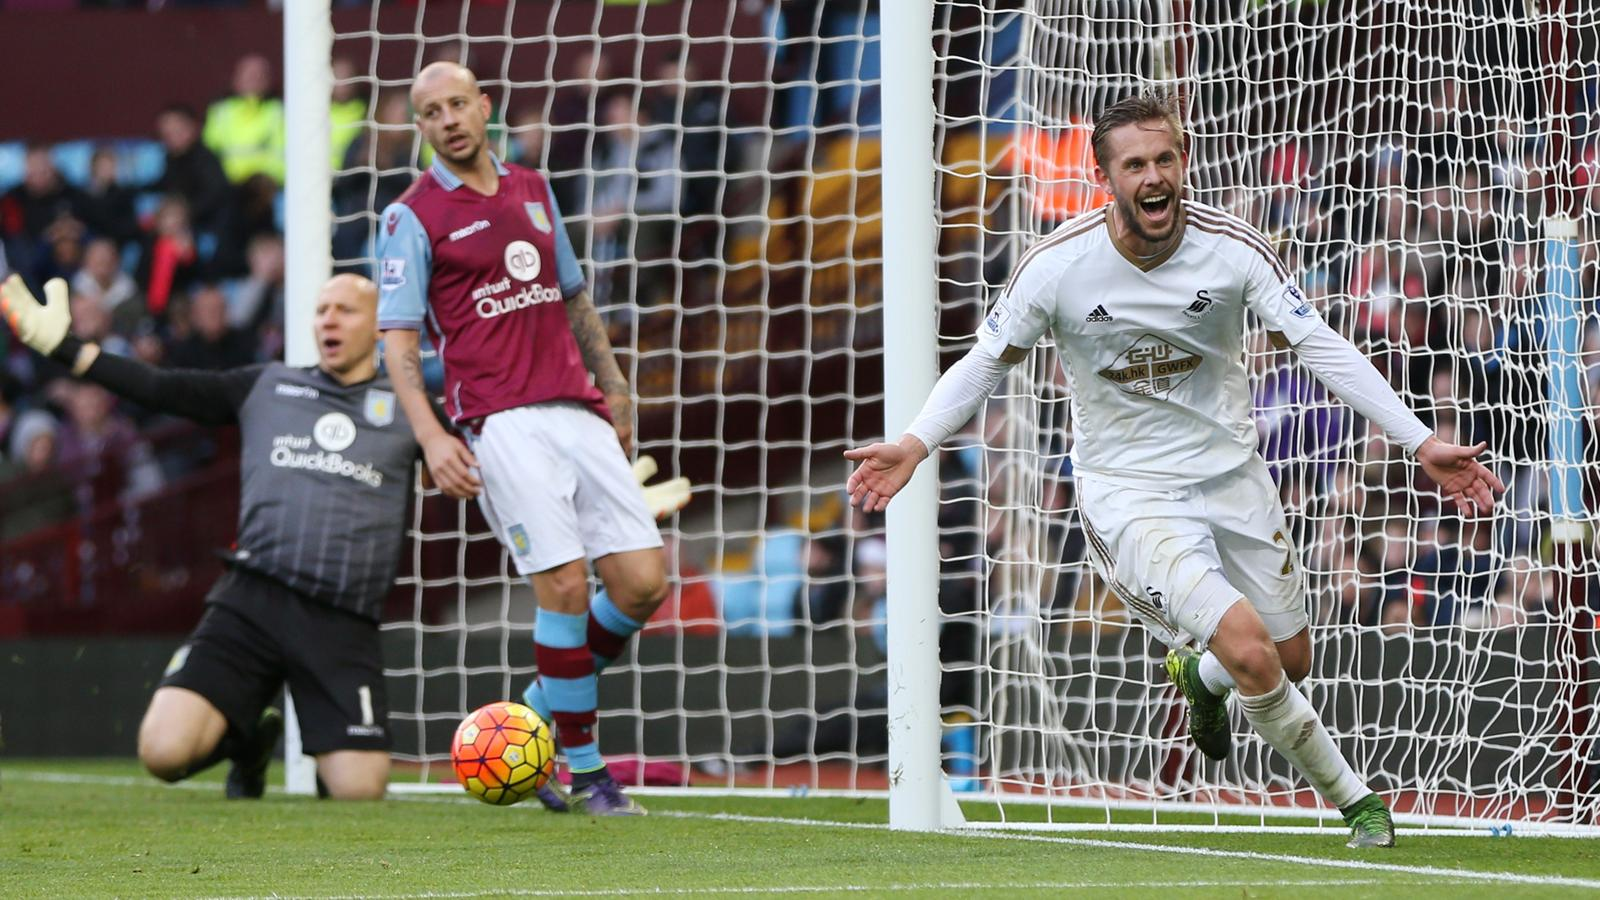 Gylfi Sigurdsson celebrates scoring for Swansea against Aston Villa